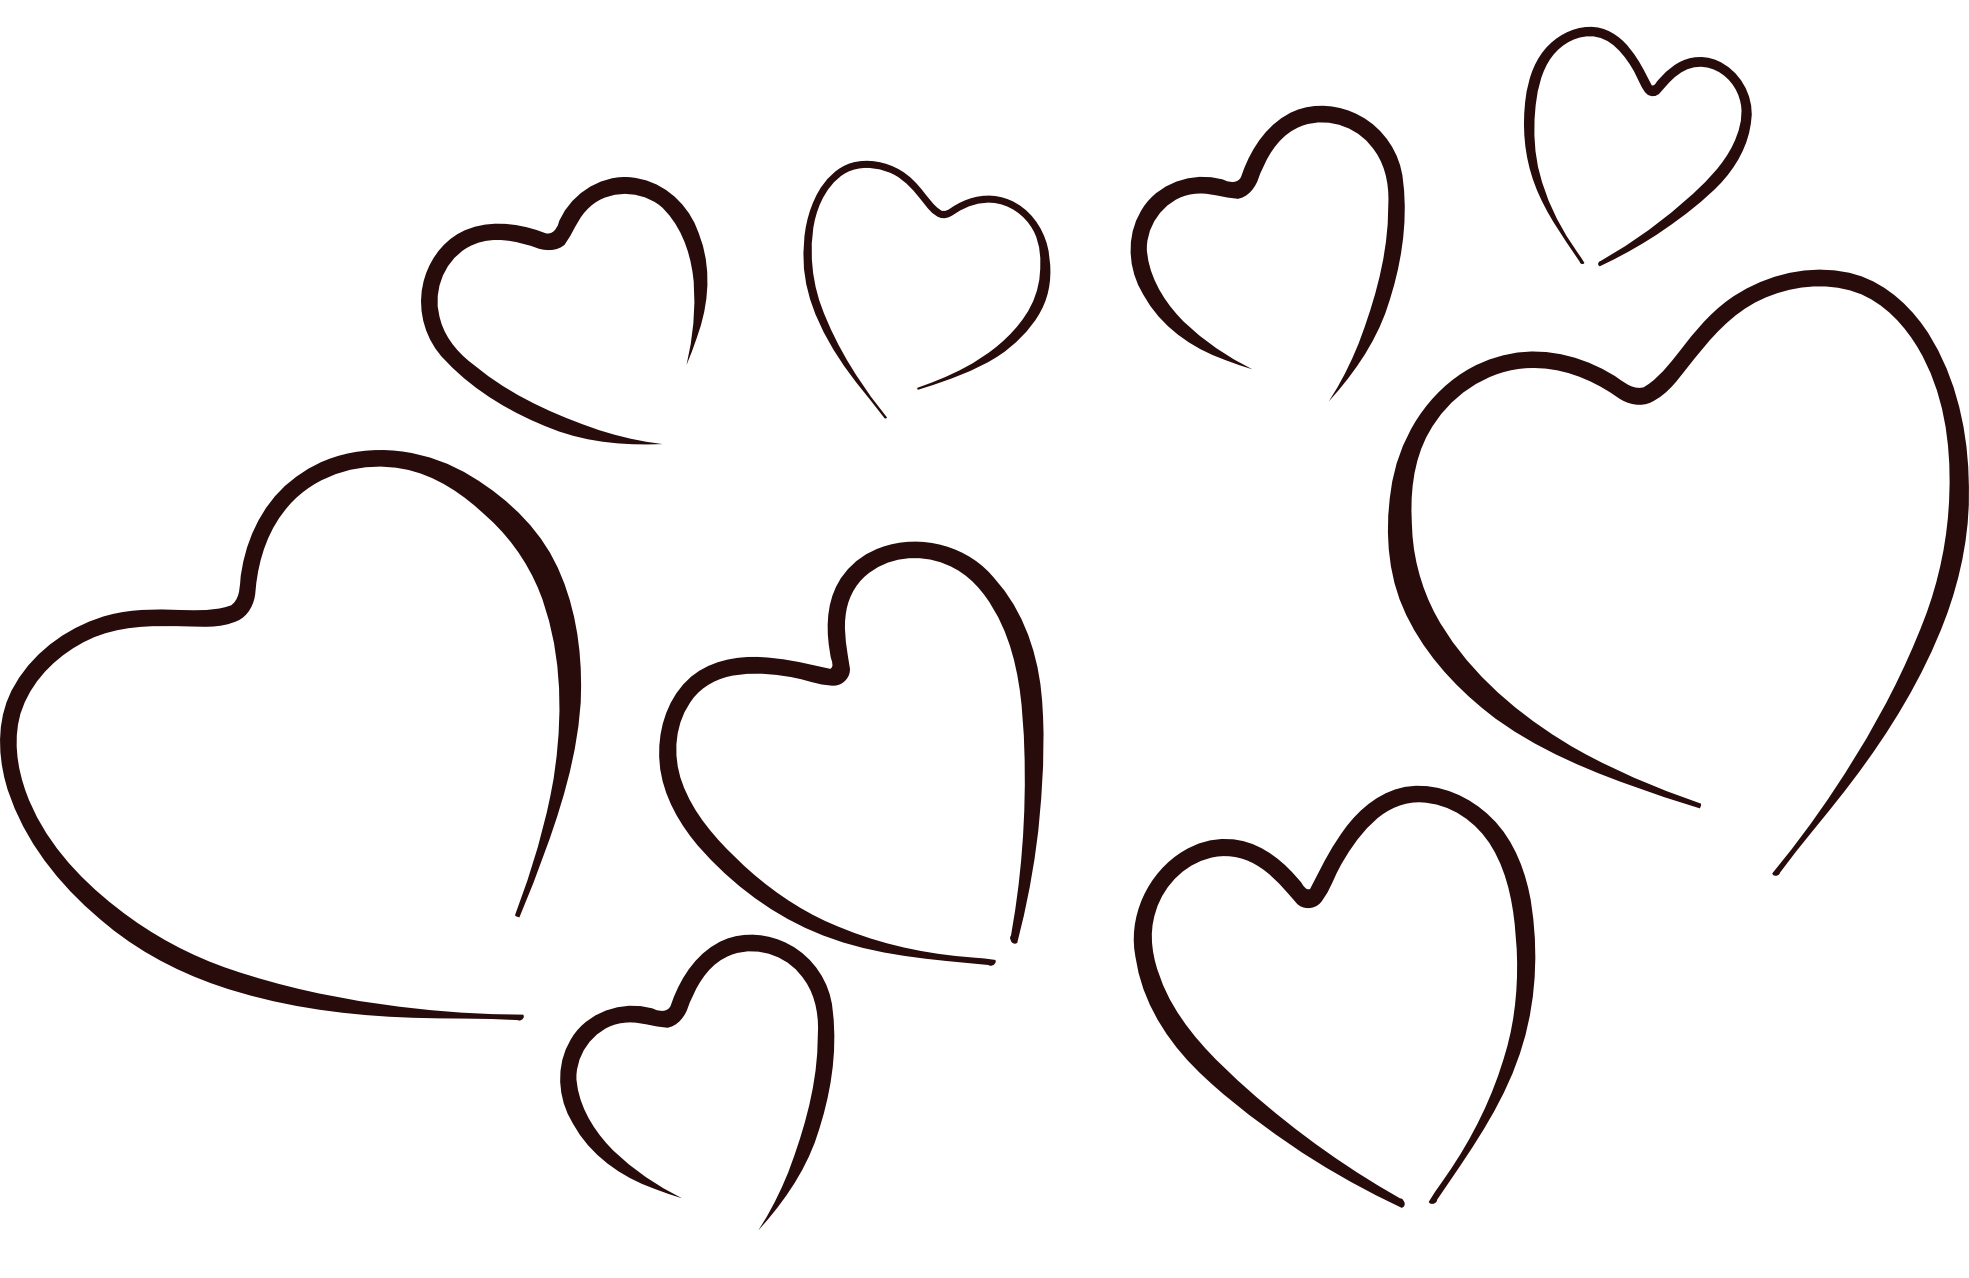 Black & white heart clipart banner royalty free download White Heart Clipart & White Heart Clip Art Images - ClipartALL.com banner royalty free download